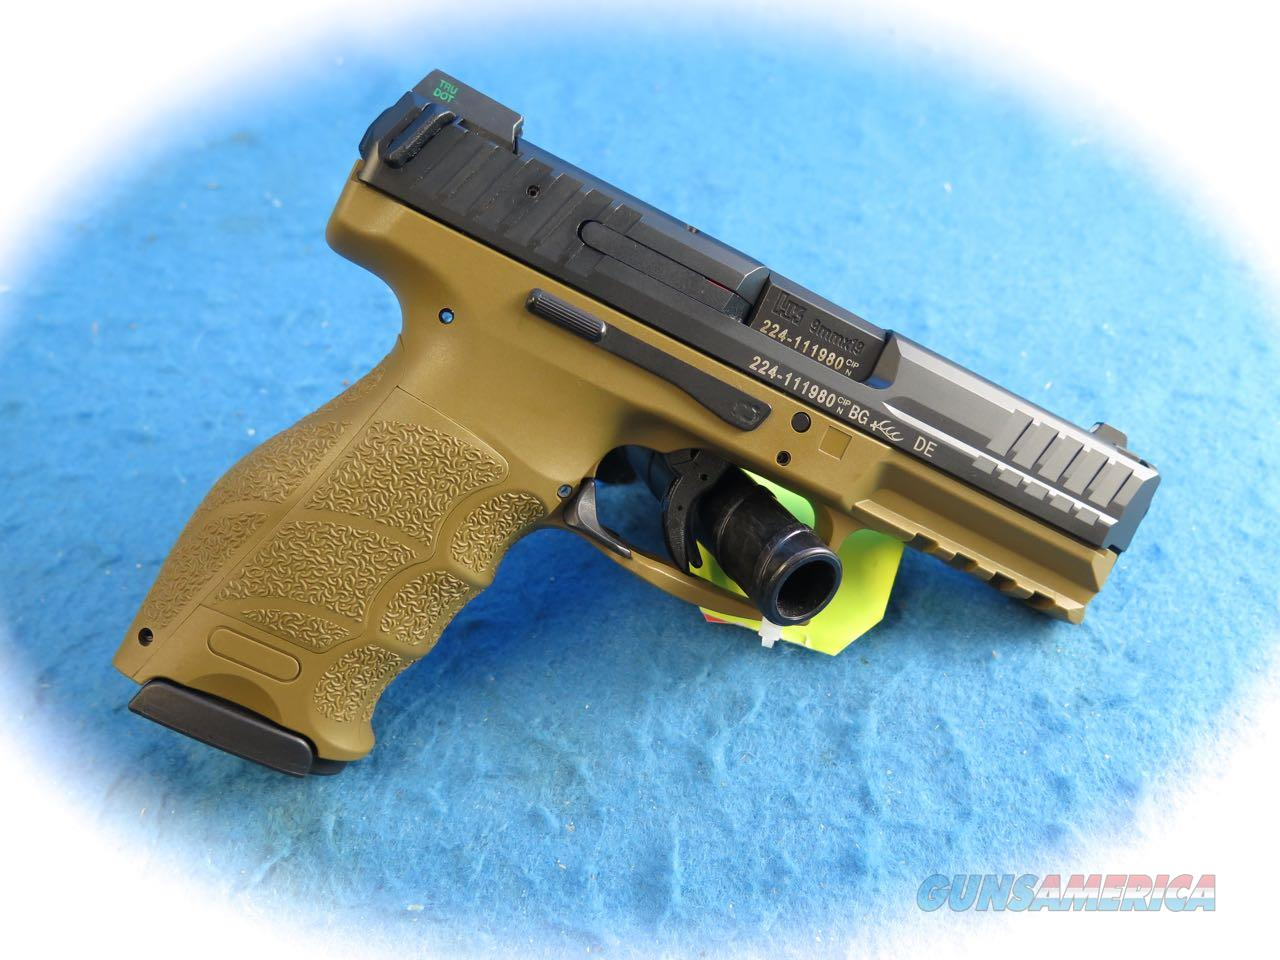 Heckler & Koch VP9 LE FDE 9mm Pistol Model 700009FDELE-A5 **New** On Sale  Guns > Pistols > Heckler & Koch Pistols > Polymer Frame